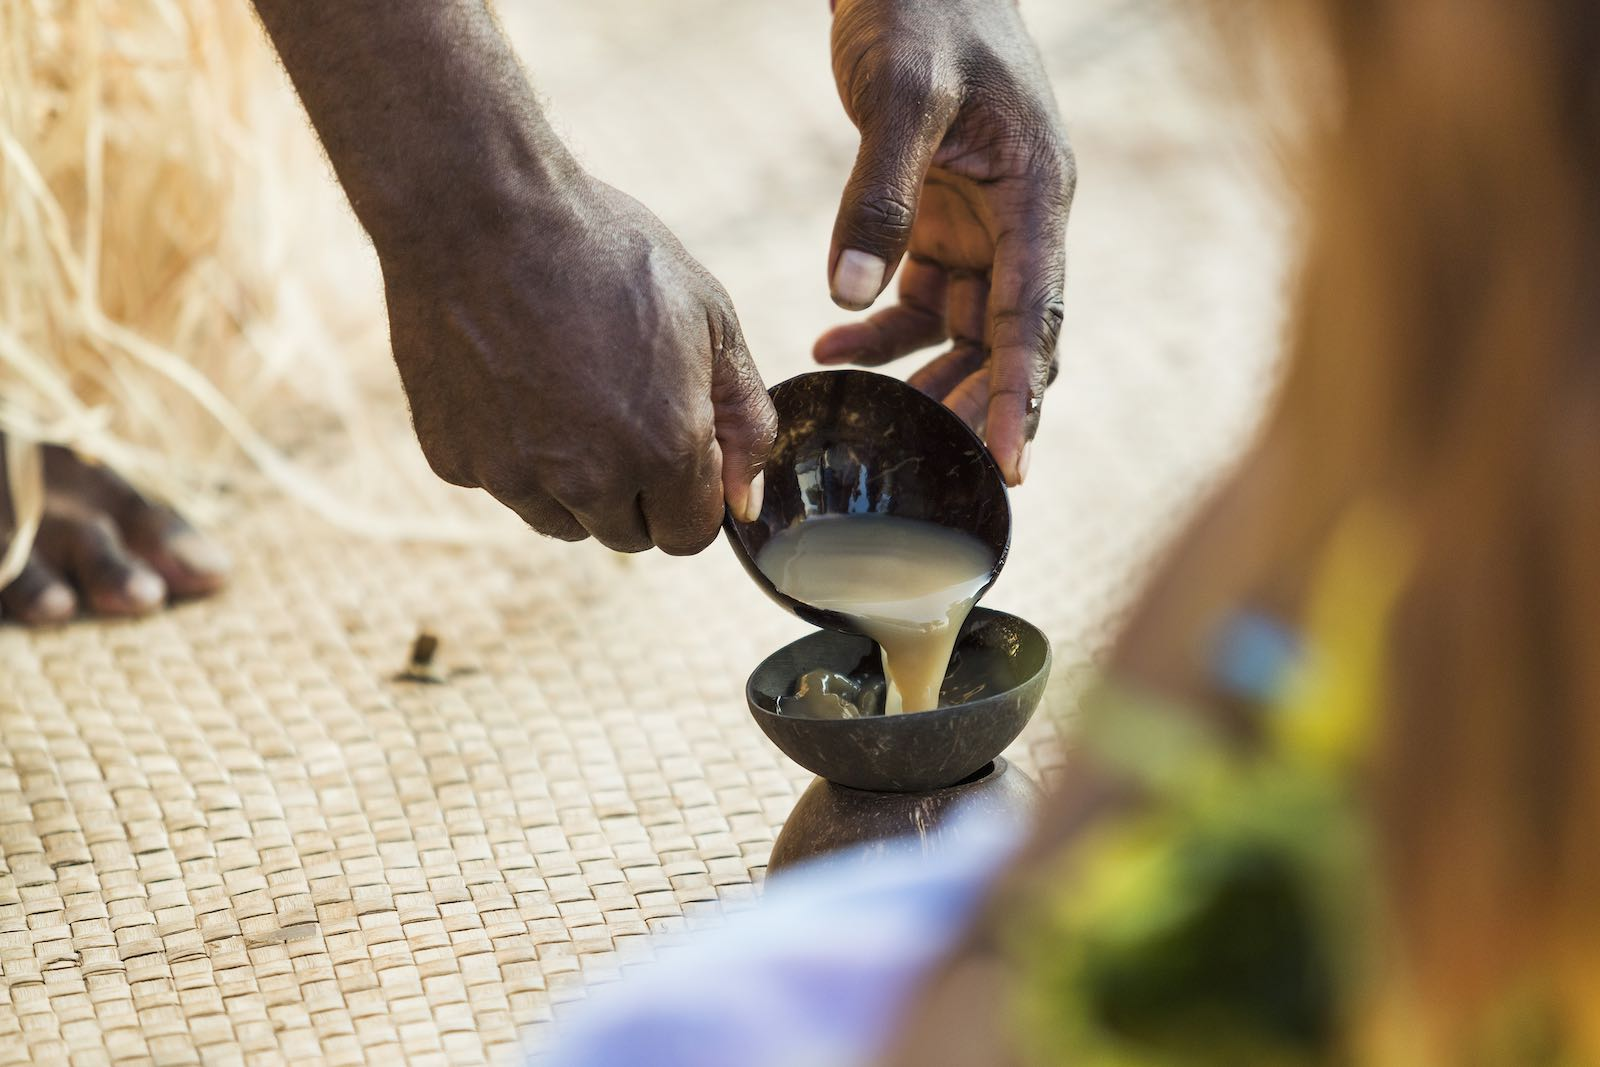 A new kava bar has opened in Auckland, but its commercial sale remains banned in Australia (Photo: Kelly Cestari via Getty)